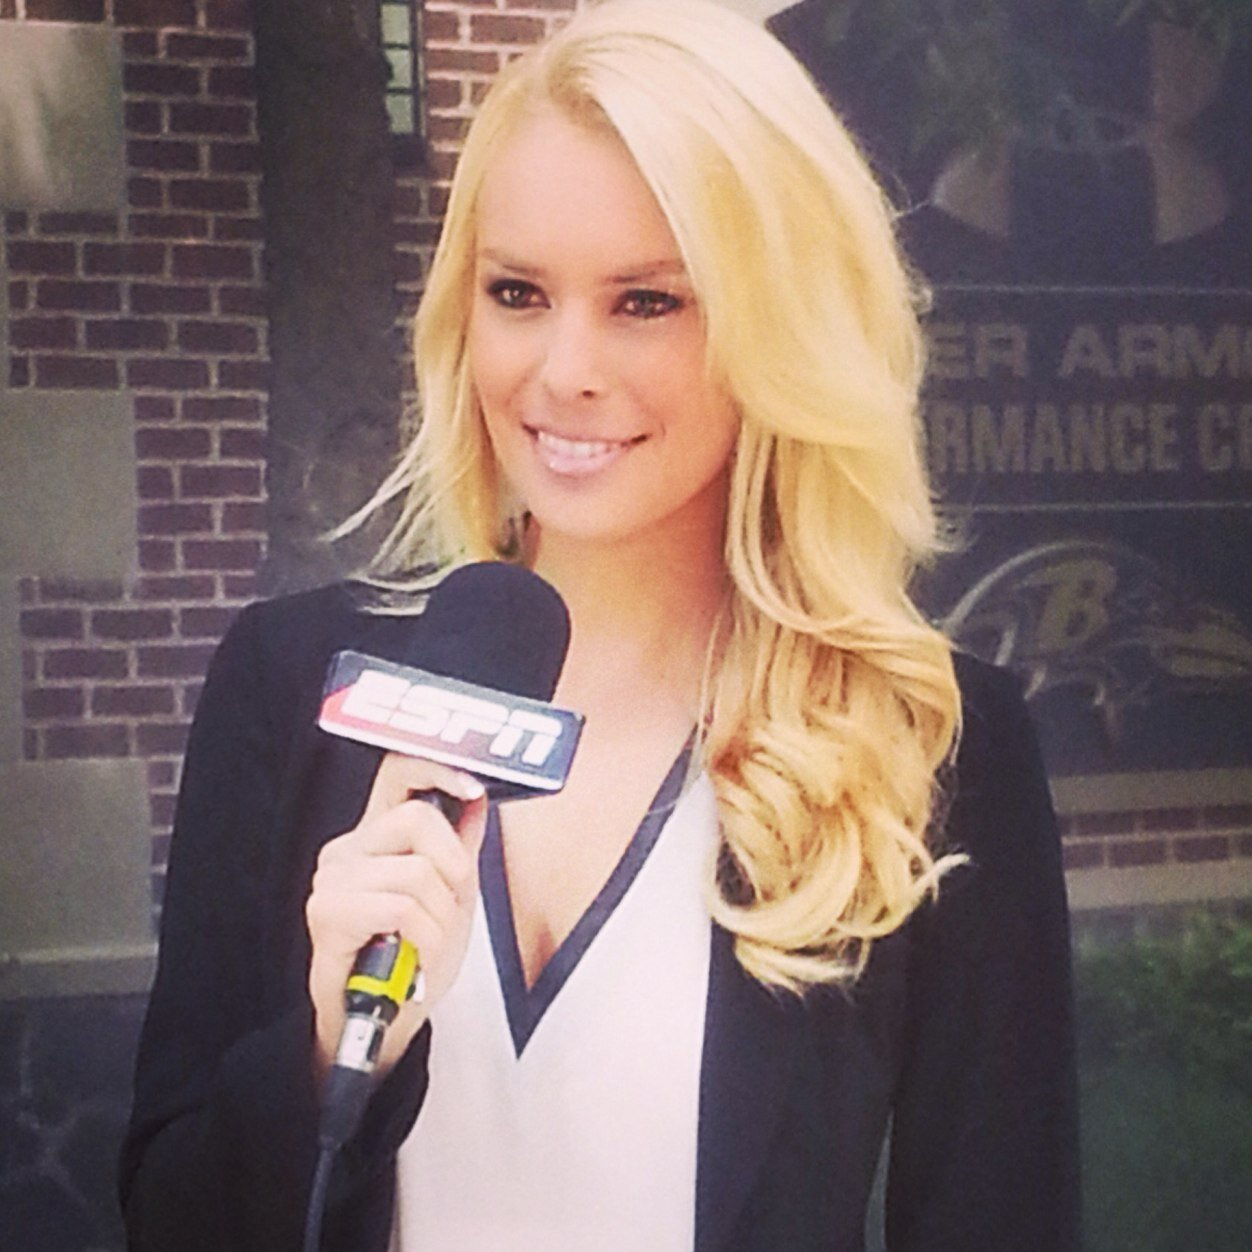 mchenry personals A smile that has won millions of heart is an espn's washington dc- based sports reporter, britt mchenery the personal life of britt mchenry is.